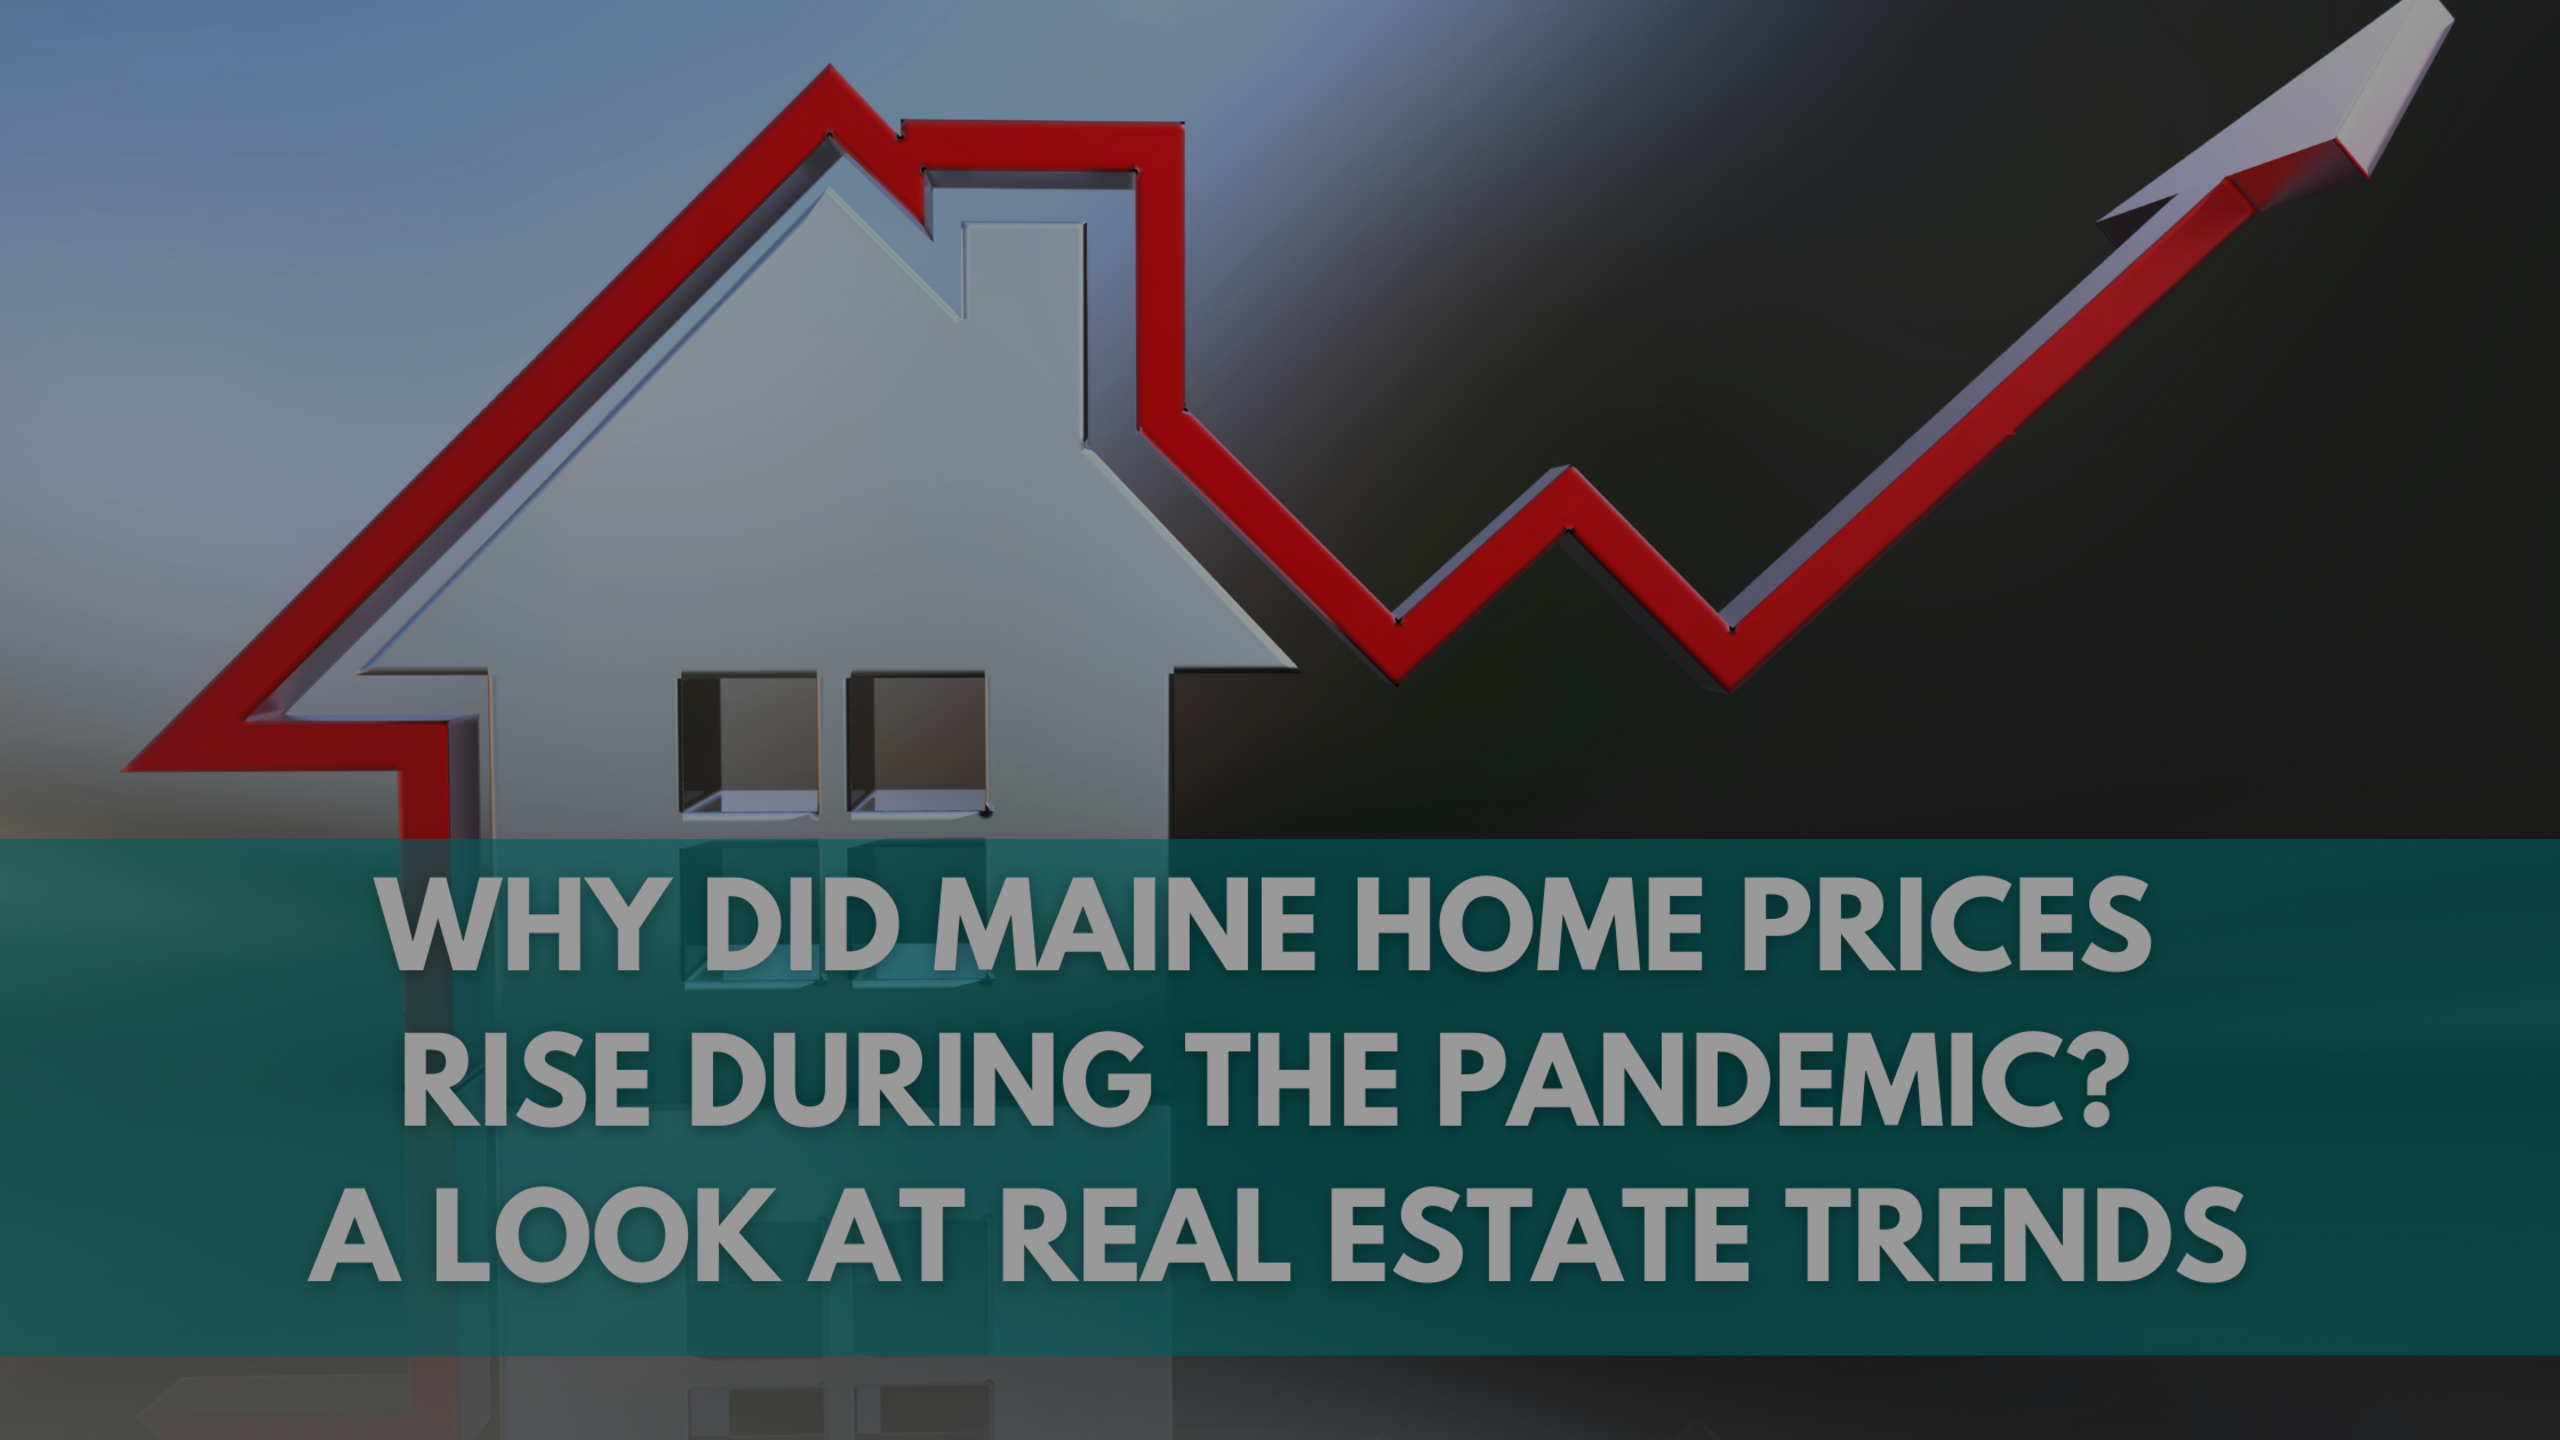 Why Did Maine Home Prices Rise During The Pandemic? A Look At Real Estate Trends